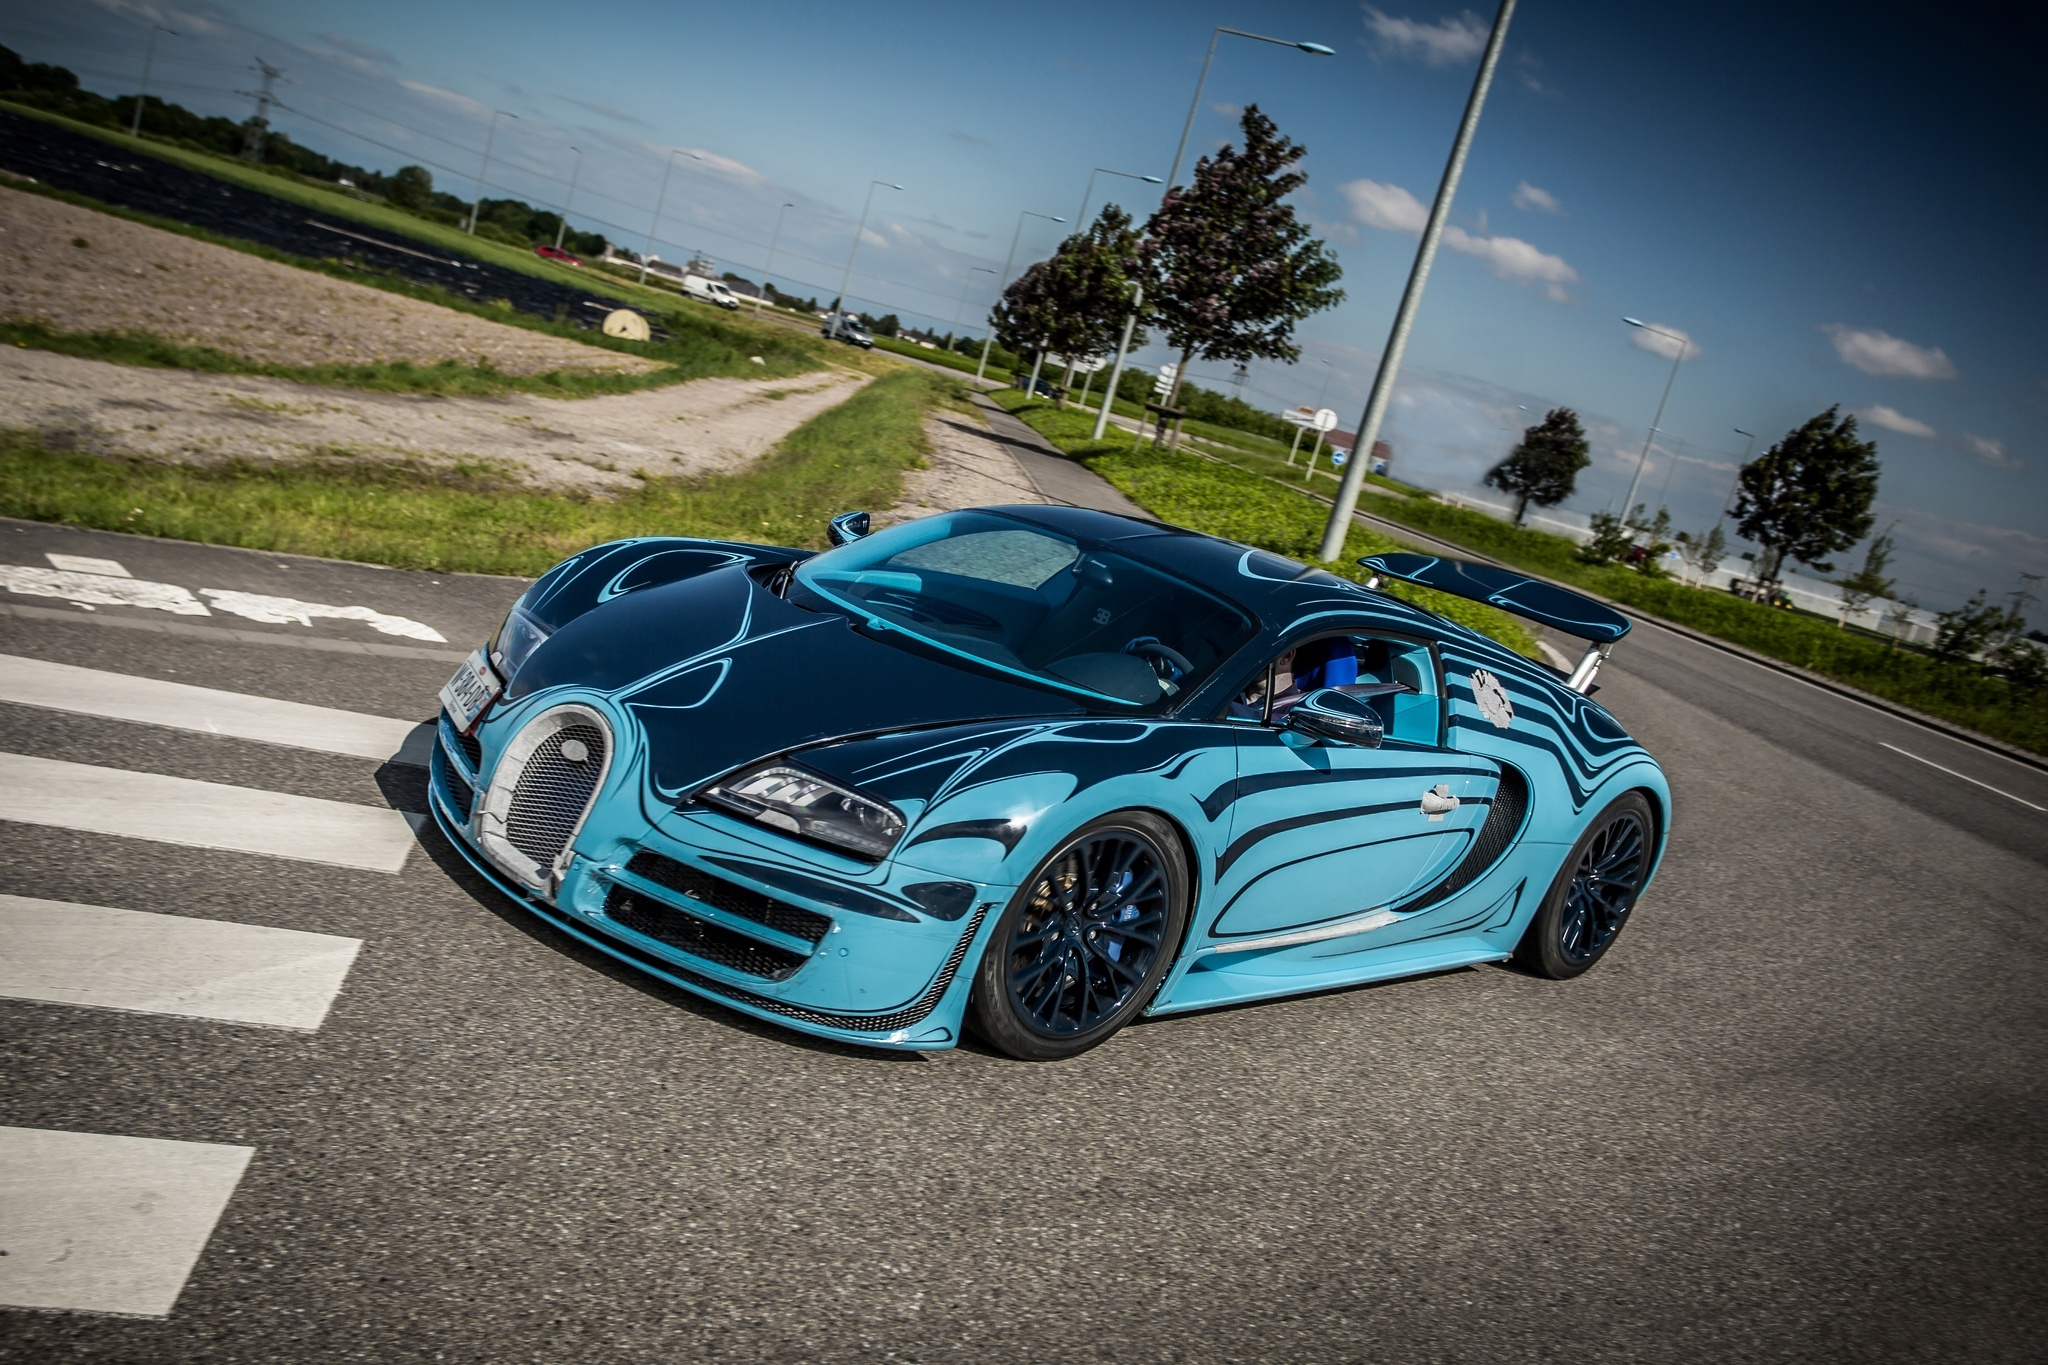 133606 download wallpaper Supercar, Sports, Bugatti, Cars, Veyron, Super, Saphir Bleu screensavers and pictures for free